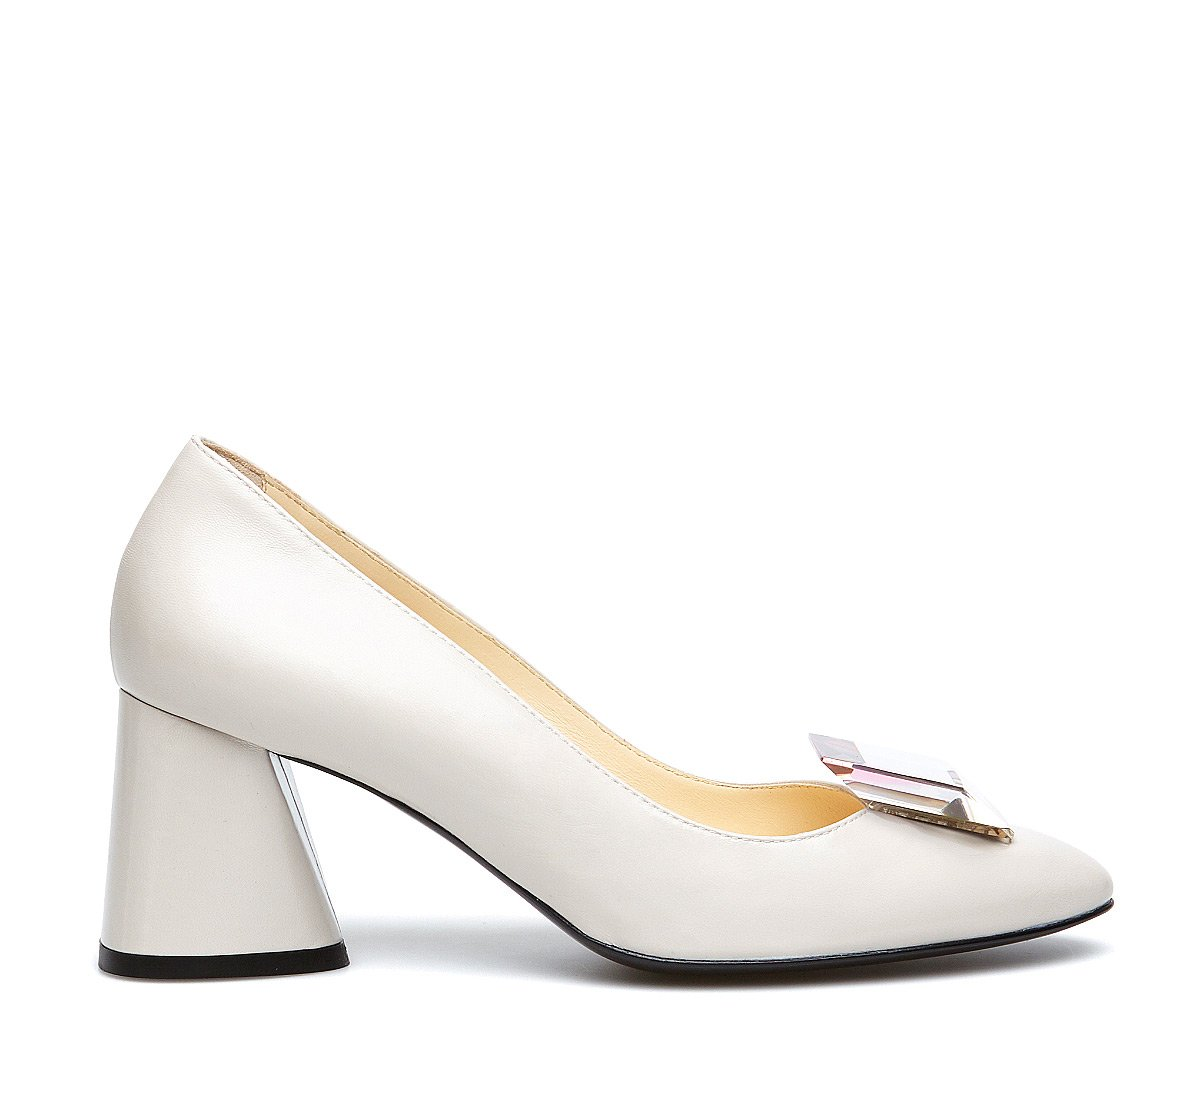 Exquisite calfskin pumps with plexi stone